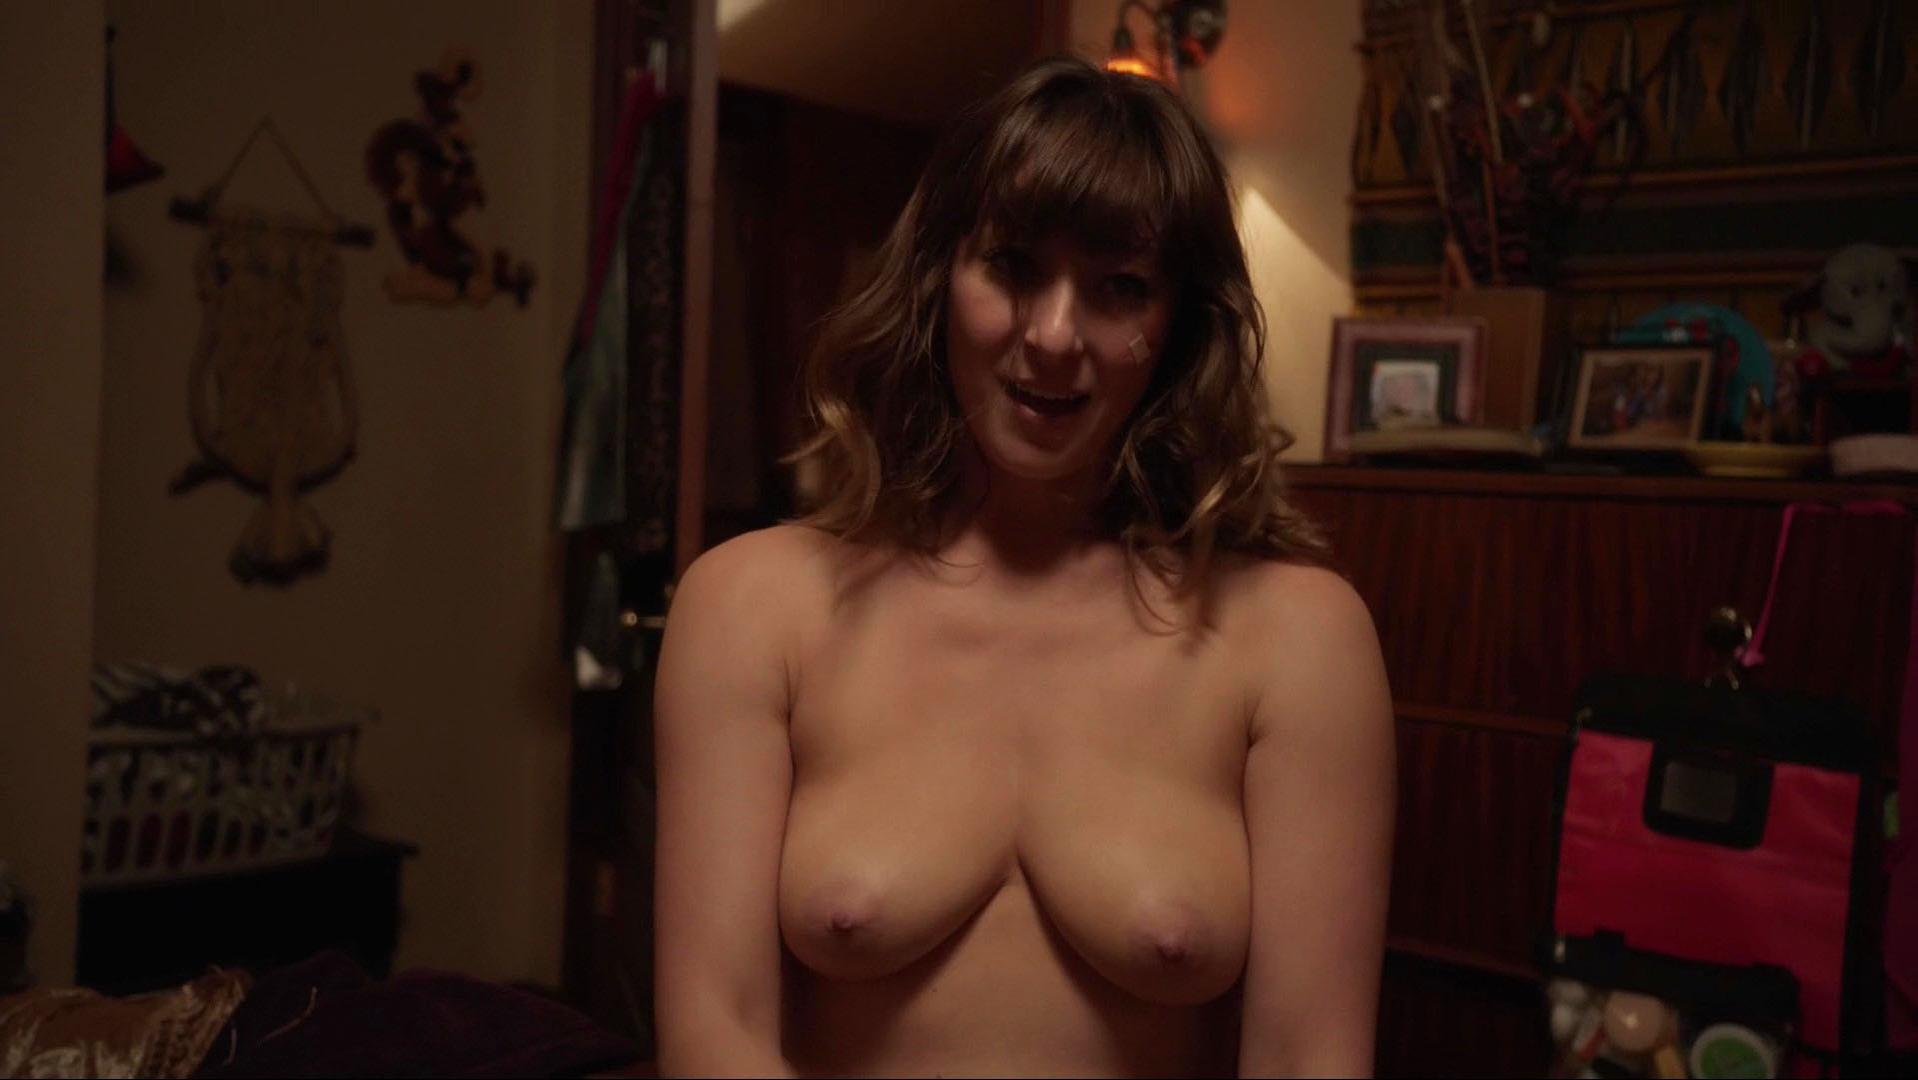 Emma greenwell licking sex in shameless series 3